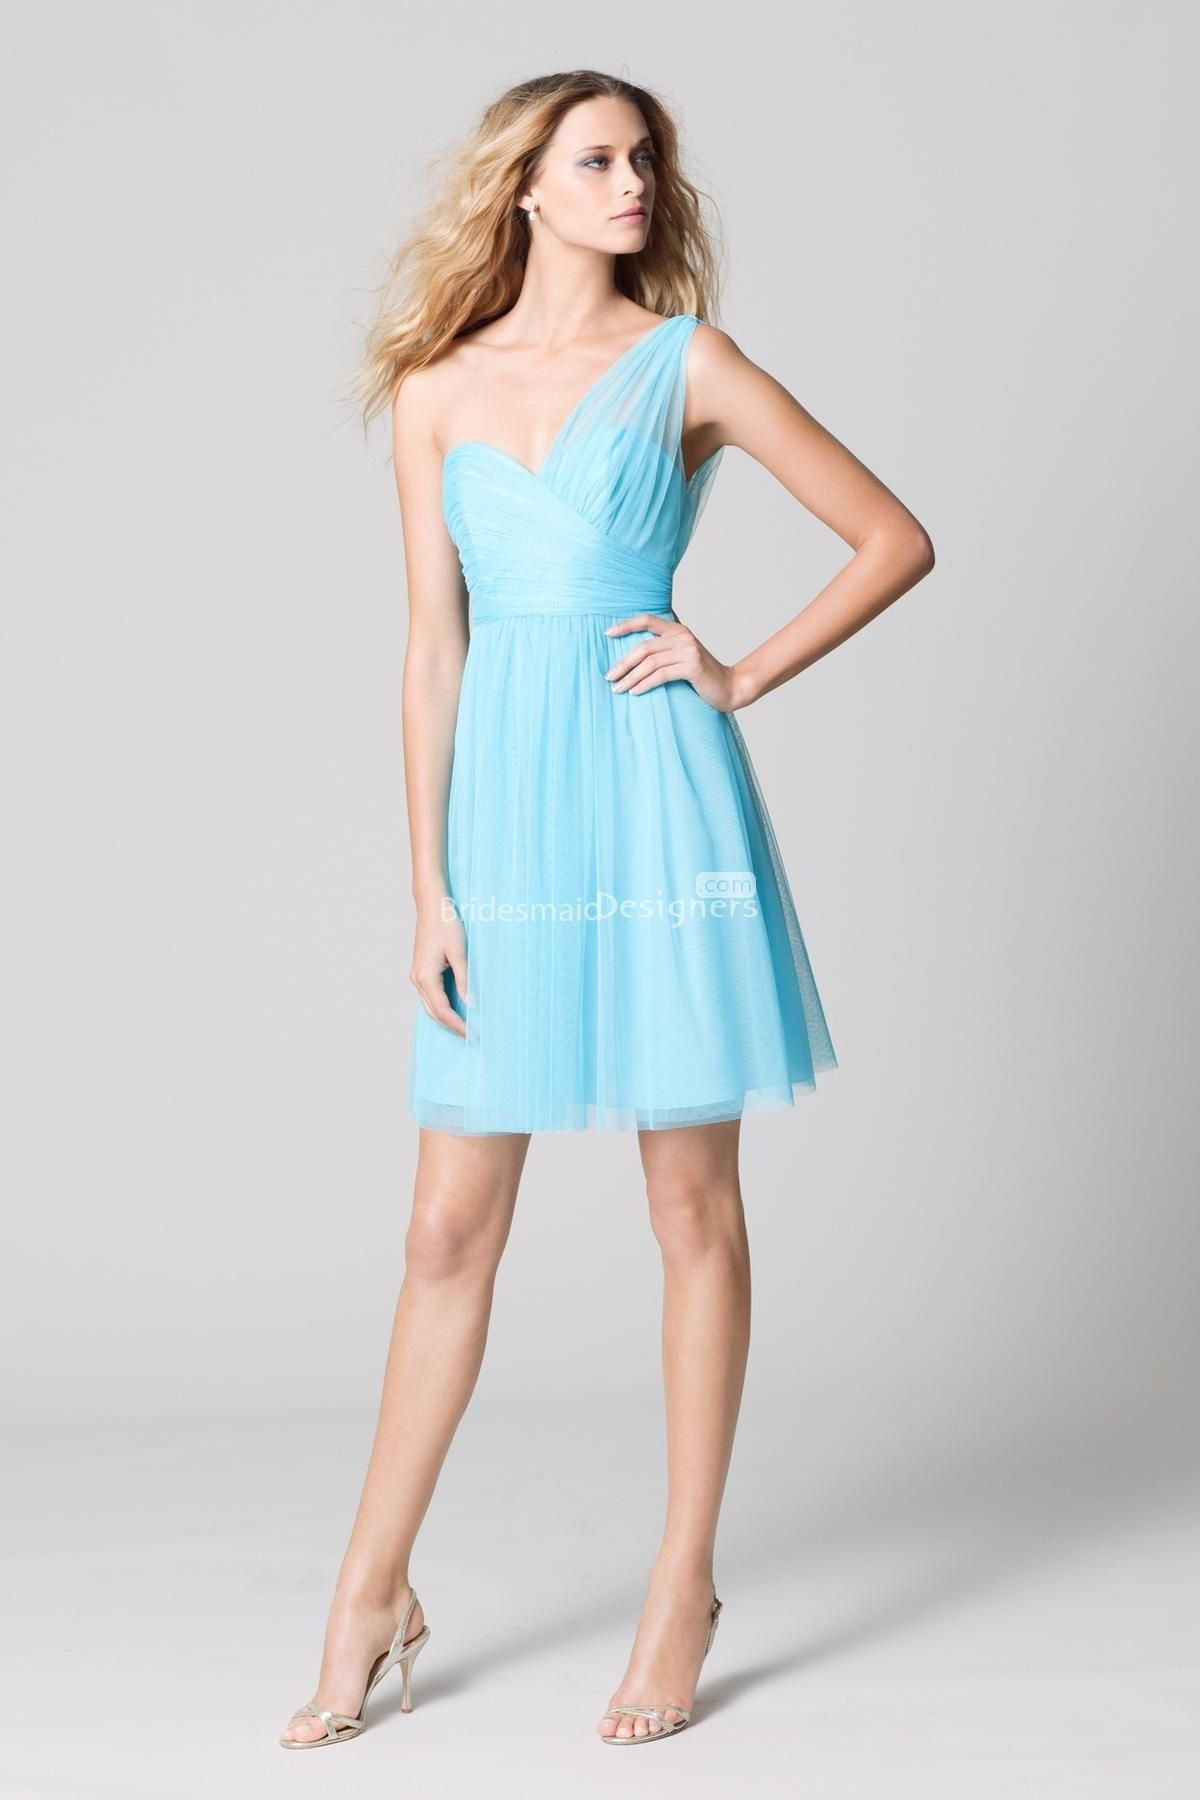 pale blue wedding dress fairy light blue one shoulder sweetheart neck short a line pleated bridesmaid dress US